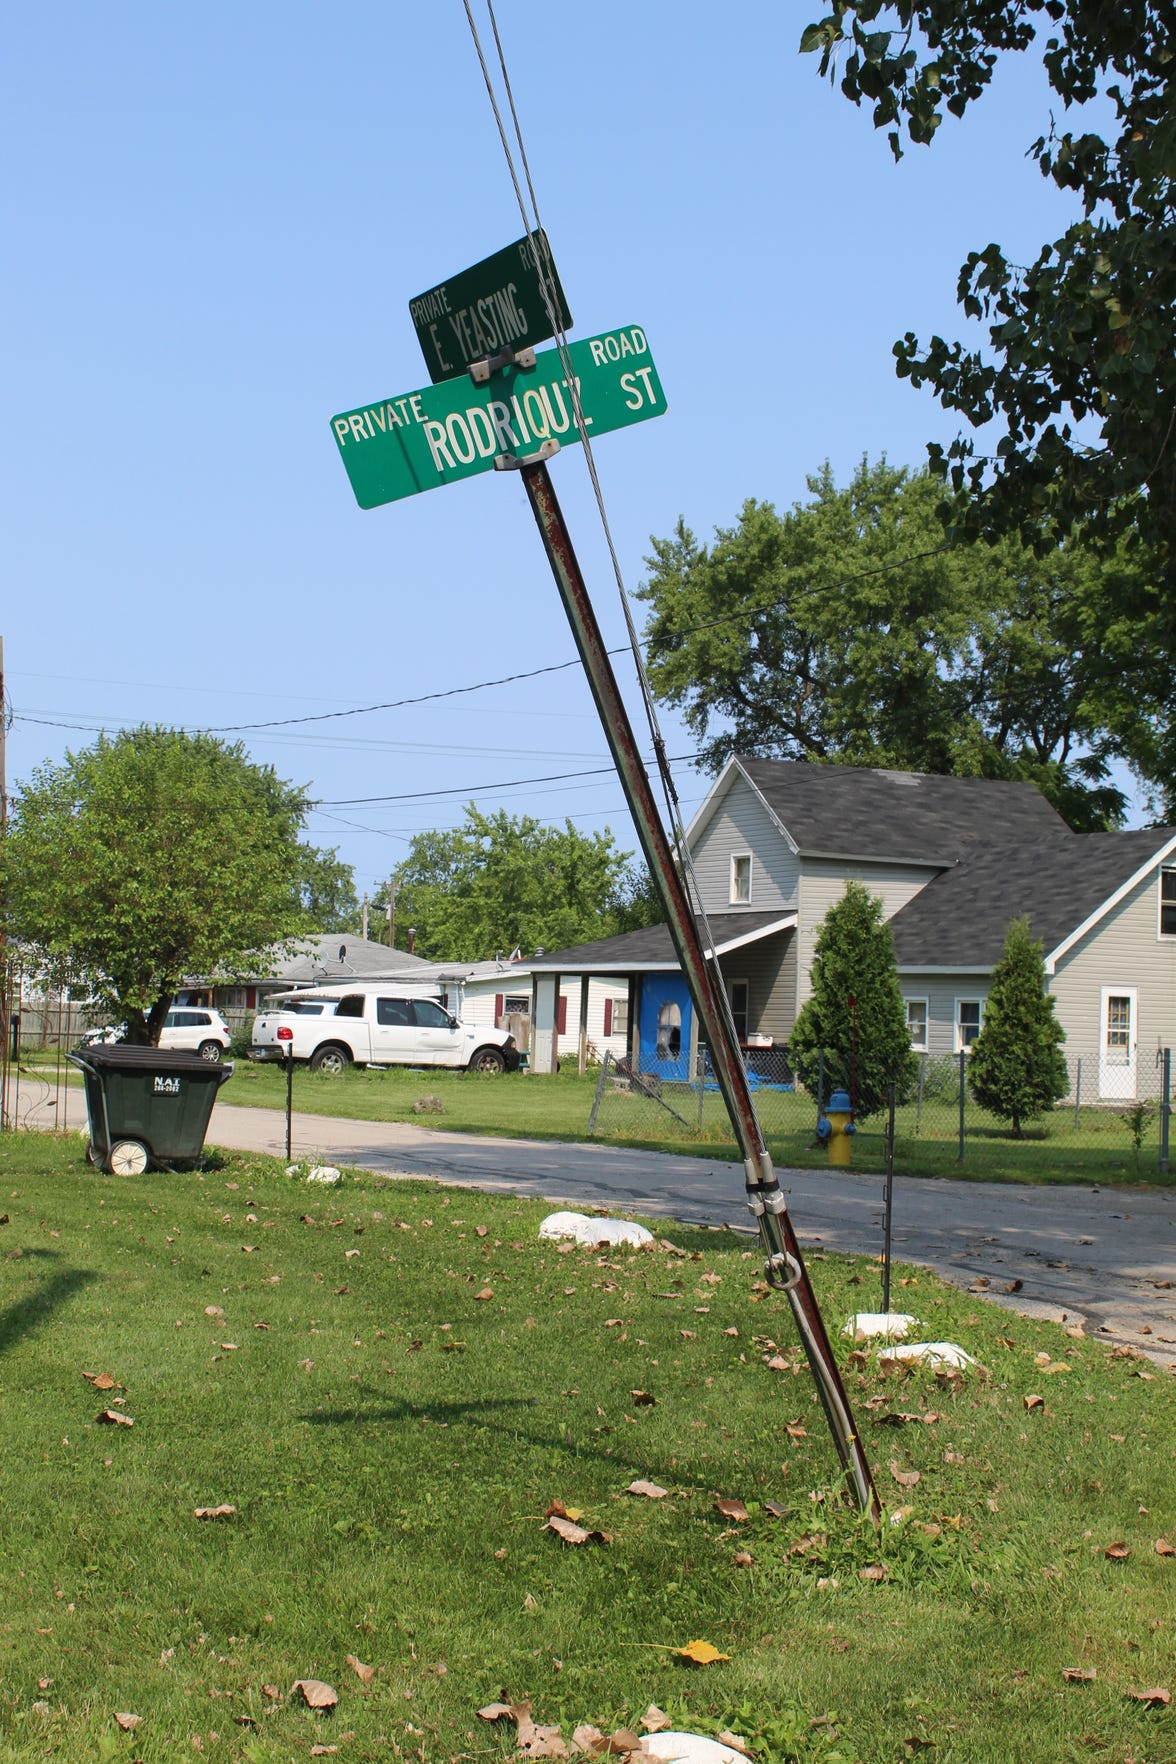 "The Rodriguez Street misspells the street name ""Rodriquz"" and leans precariously, symbolic of the problems that have plagued the 364-foot-long Madison Township road for decades."